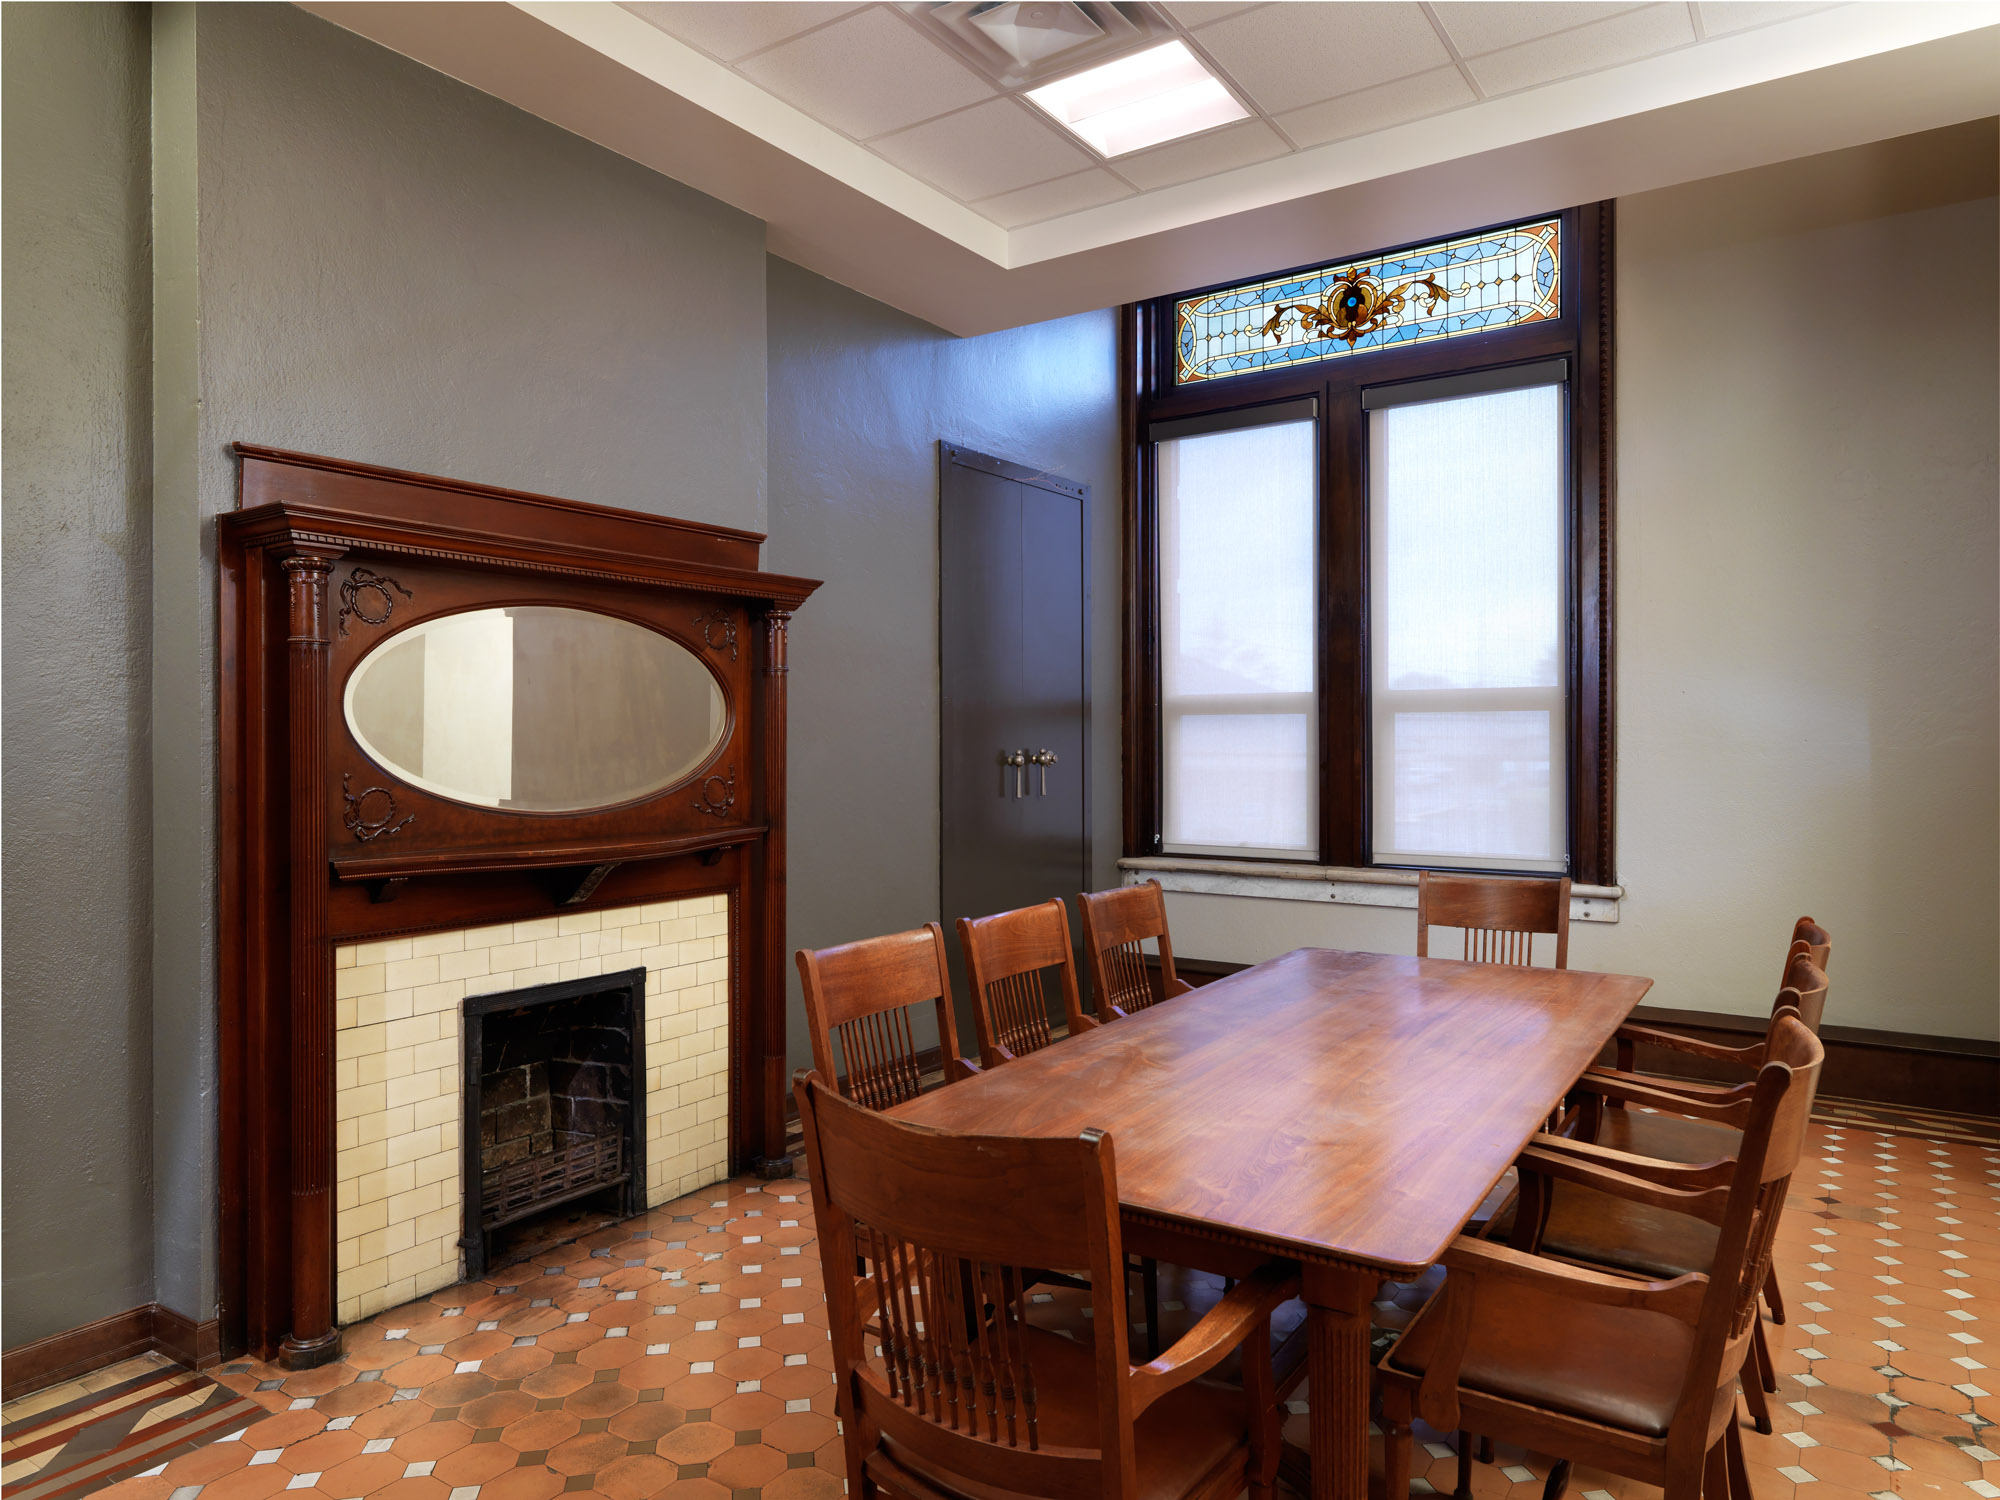 Auglaize County Courthouse Meeting Room